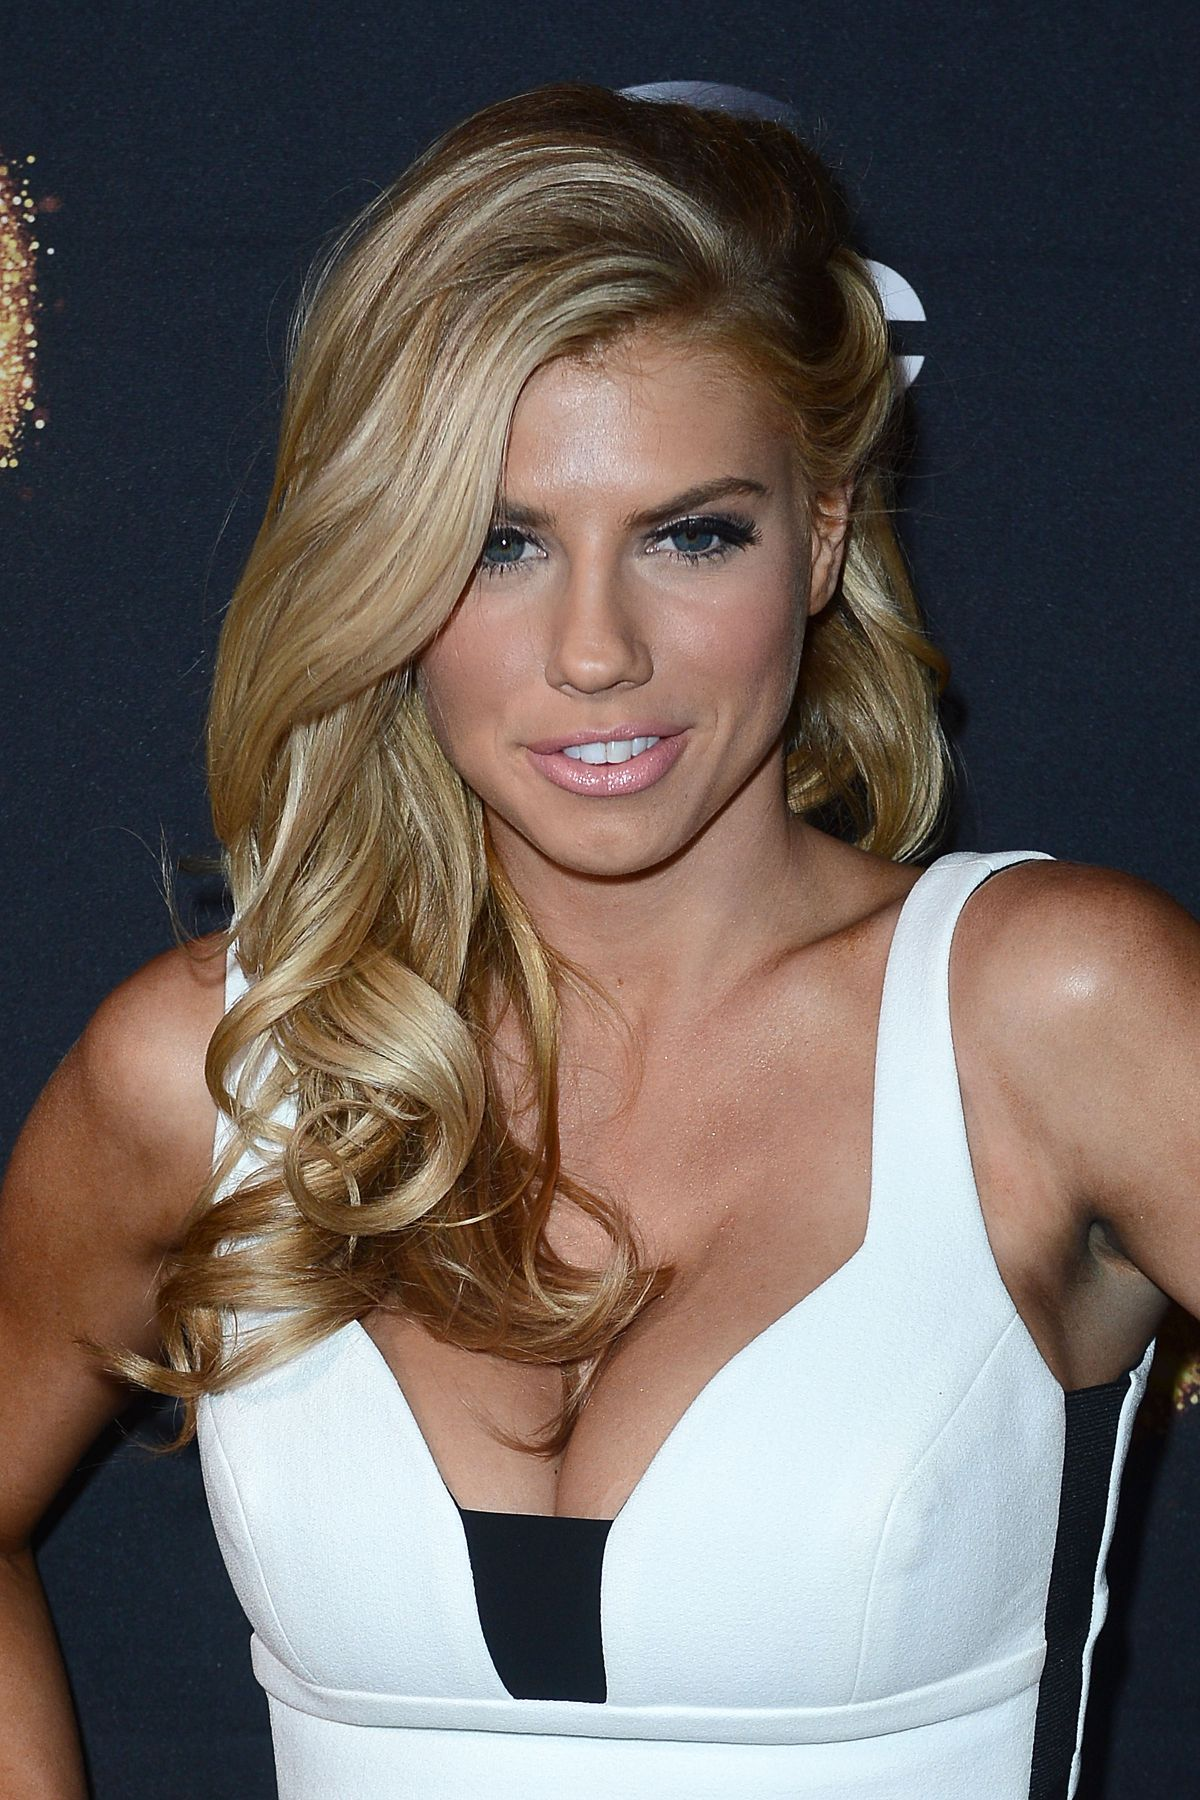 Charlotte mckinney at dancing with the stars cast party at hyde lounge